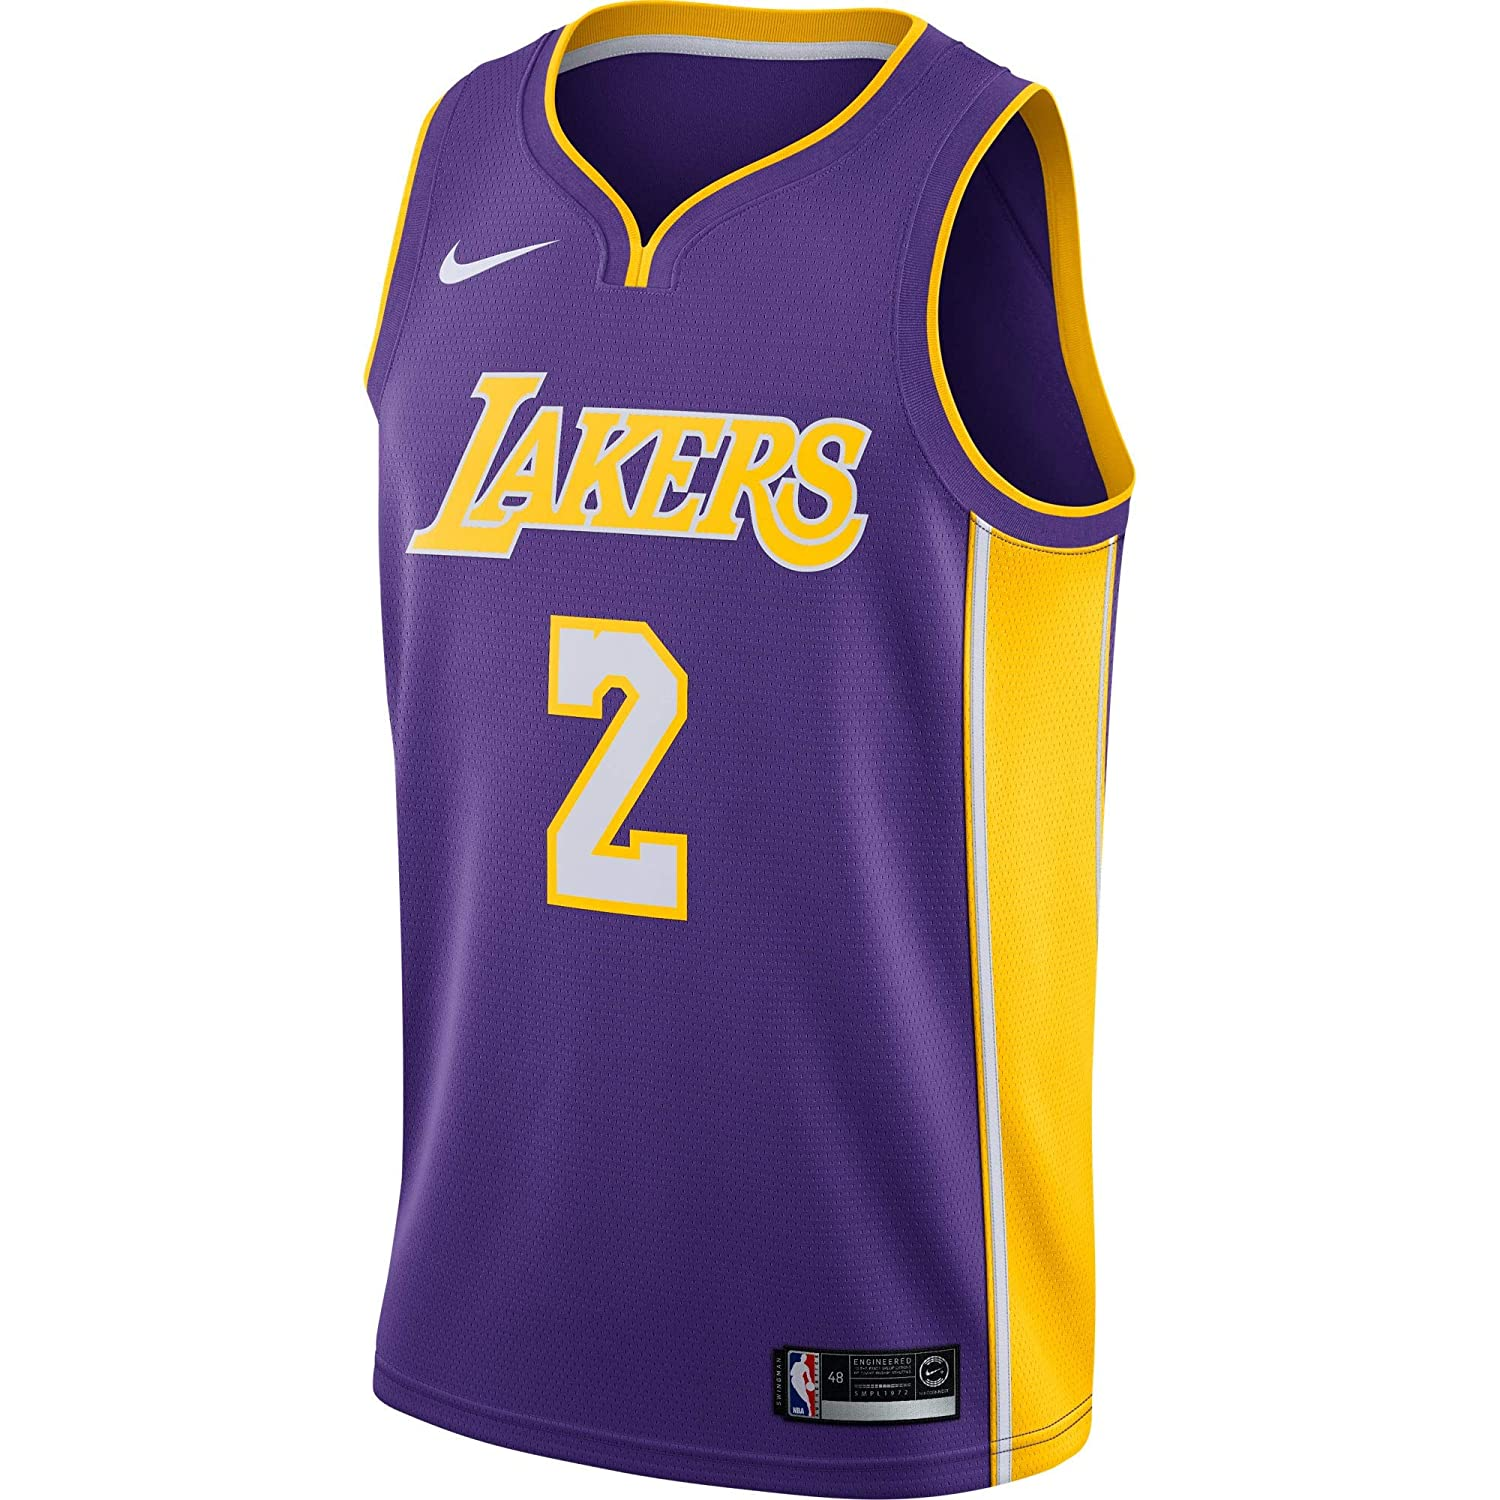 Amazon.com   NIKE Lonzo Ball Los Angeles Lakers Icon Edition Purple Jersey  - Men s Large   Sports   Outdoors 2ea9f3290